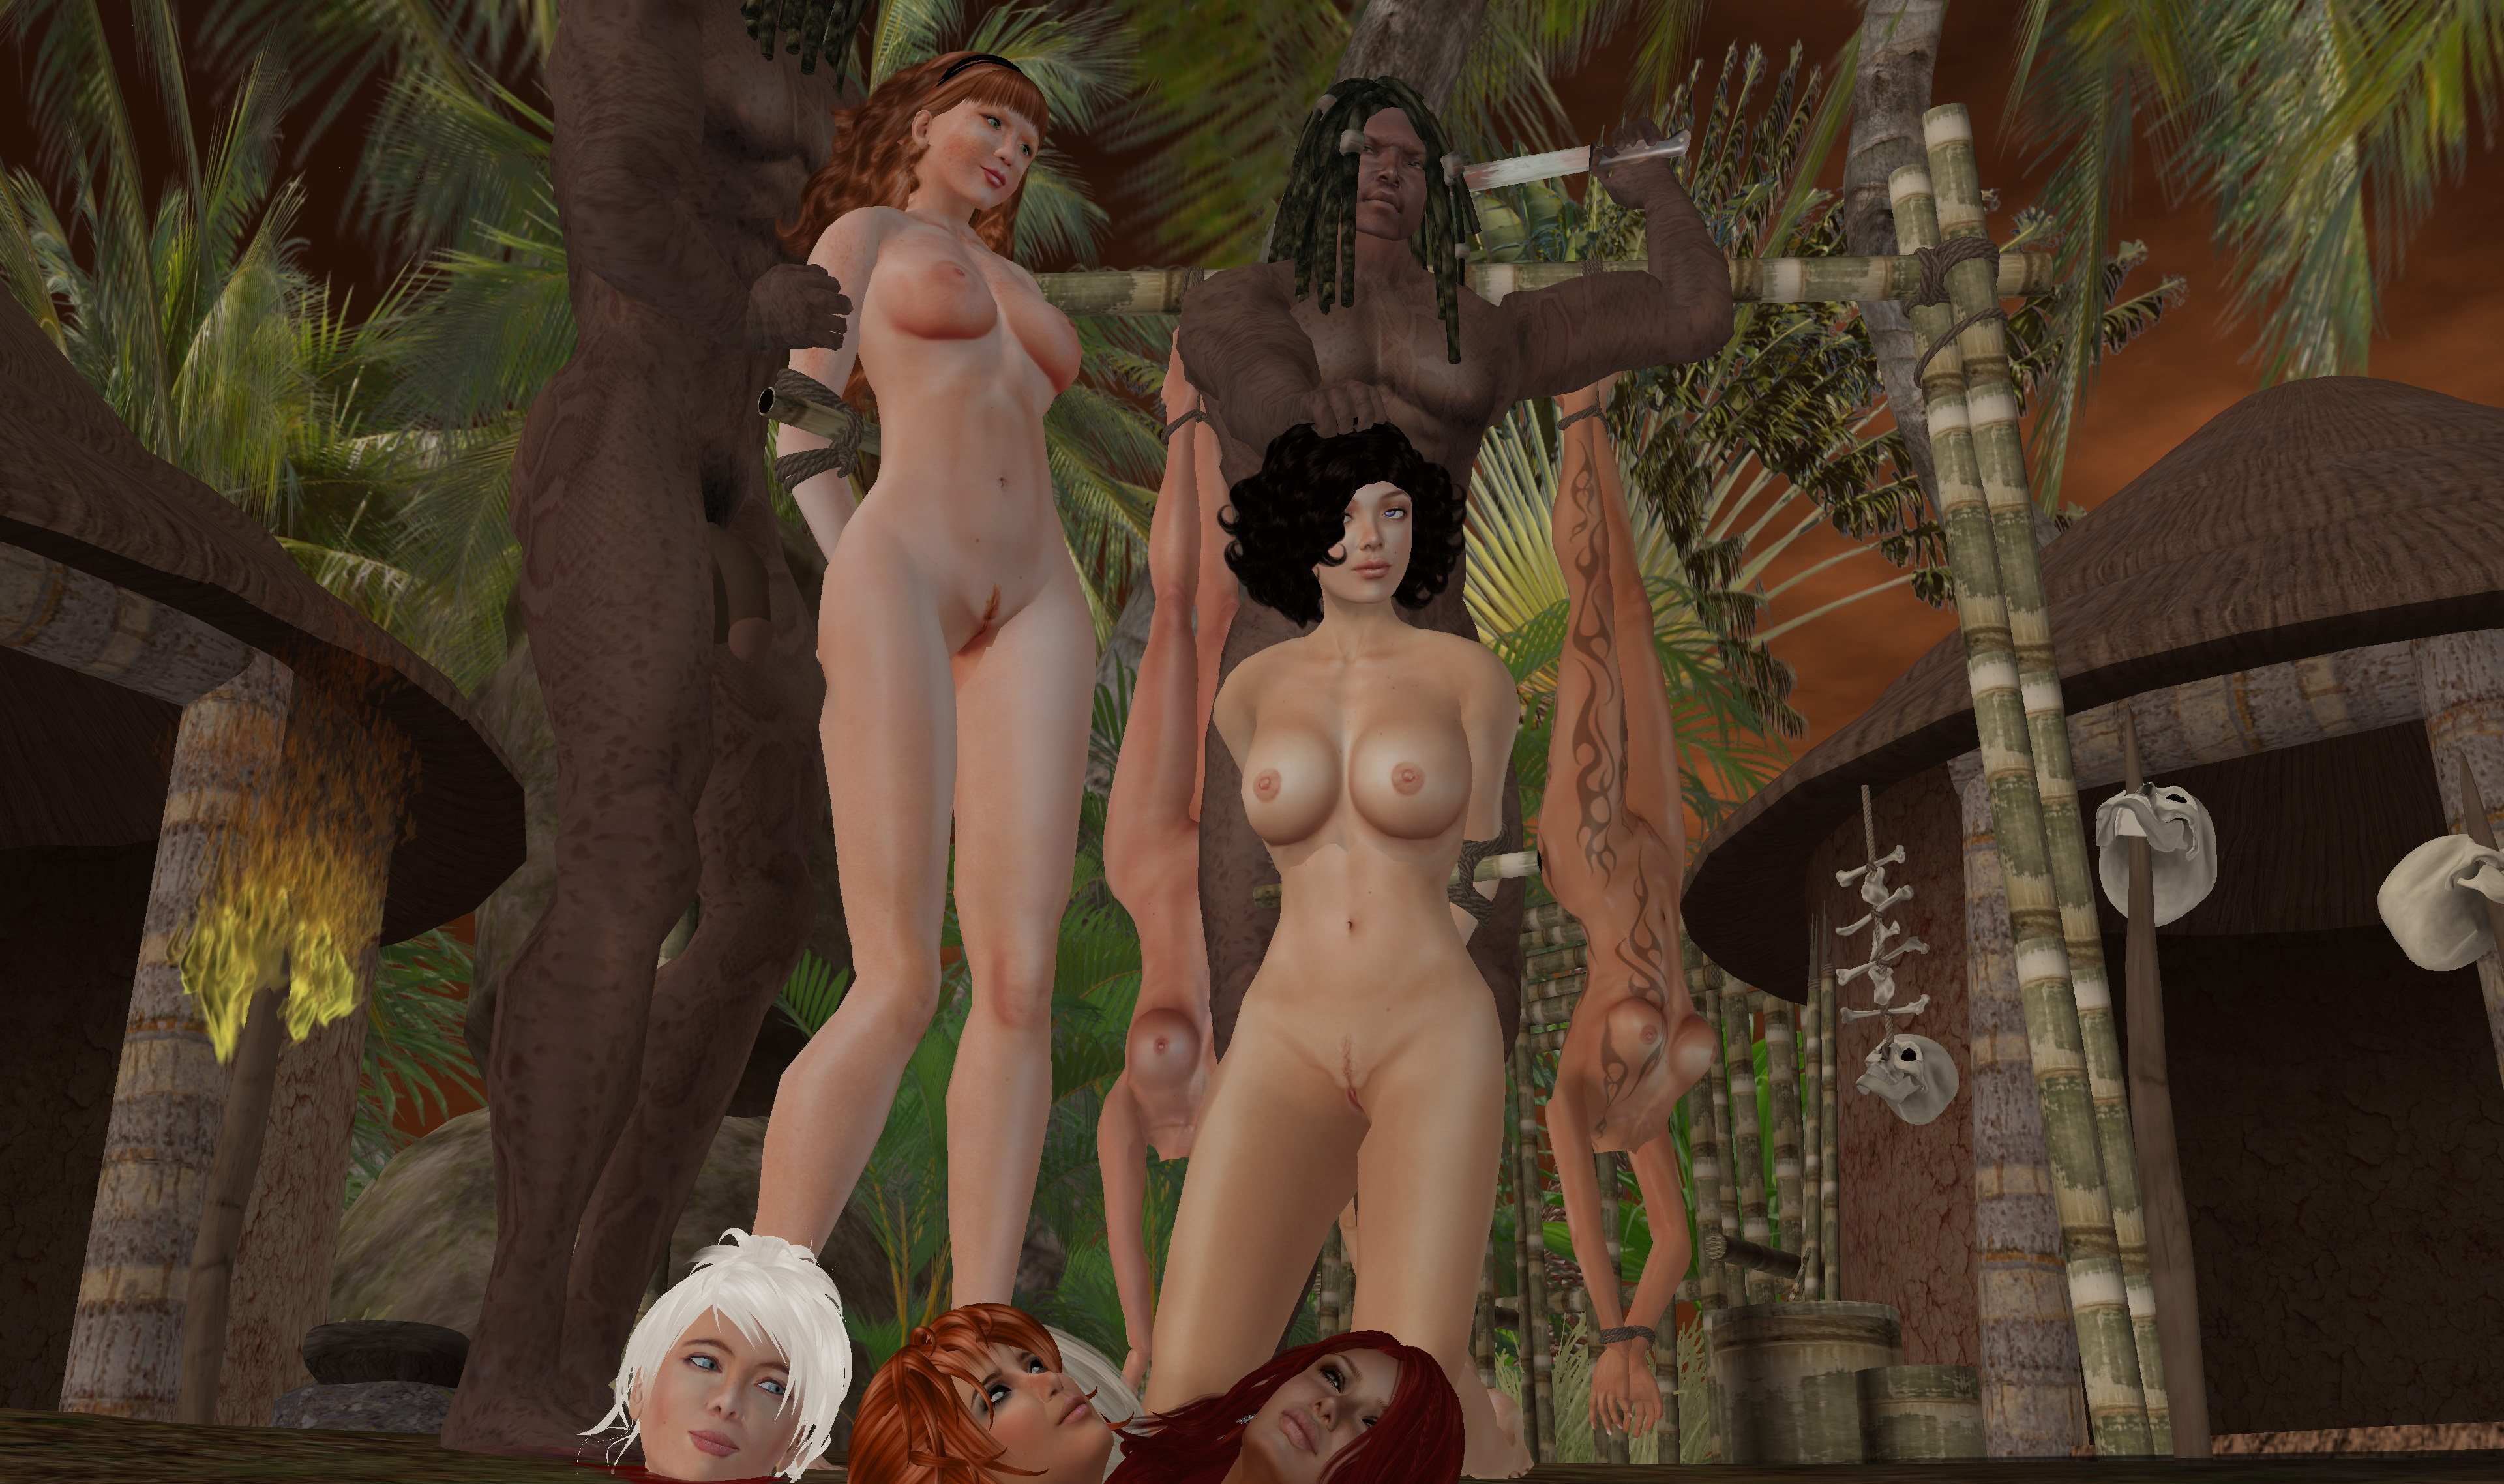 Dolcett Meat http://stepford-sl.blogspot.com/2011/07/dolcett-in-box-14-cannibal-village.html